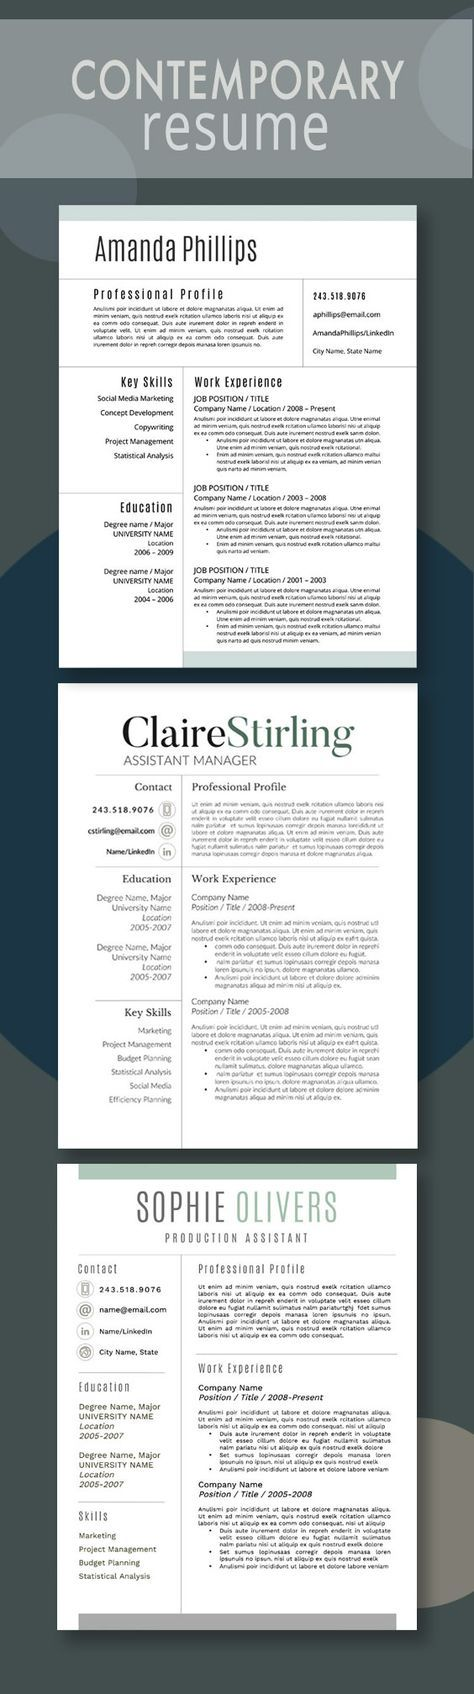 How To Make A Resume In Microsoft Word Brilliant 8 Best Resume Images On Pinterest  Career Resume And Resume Help